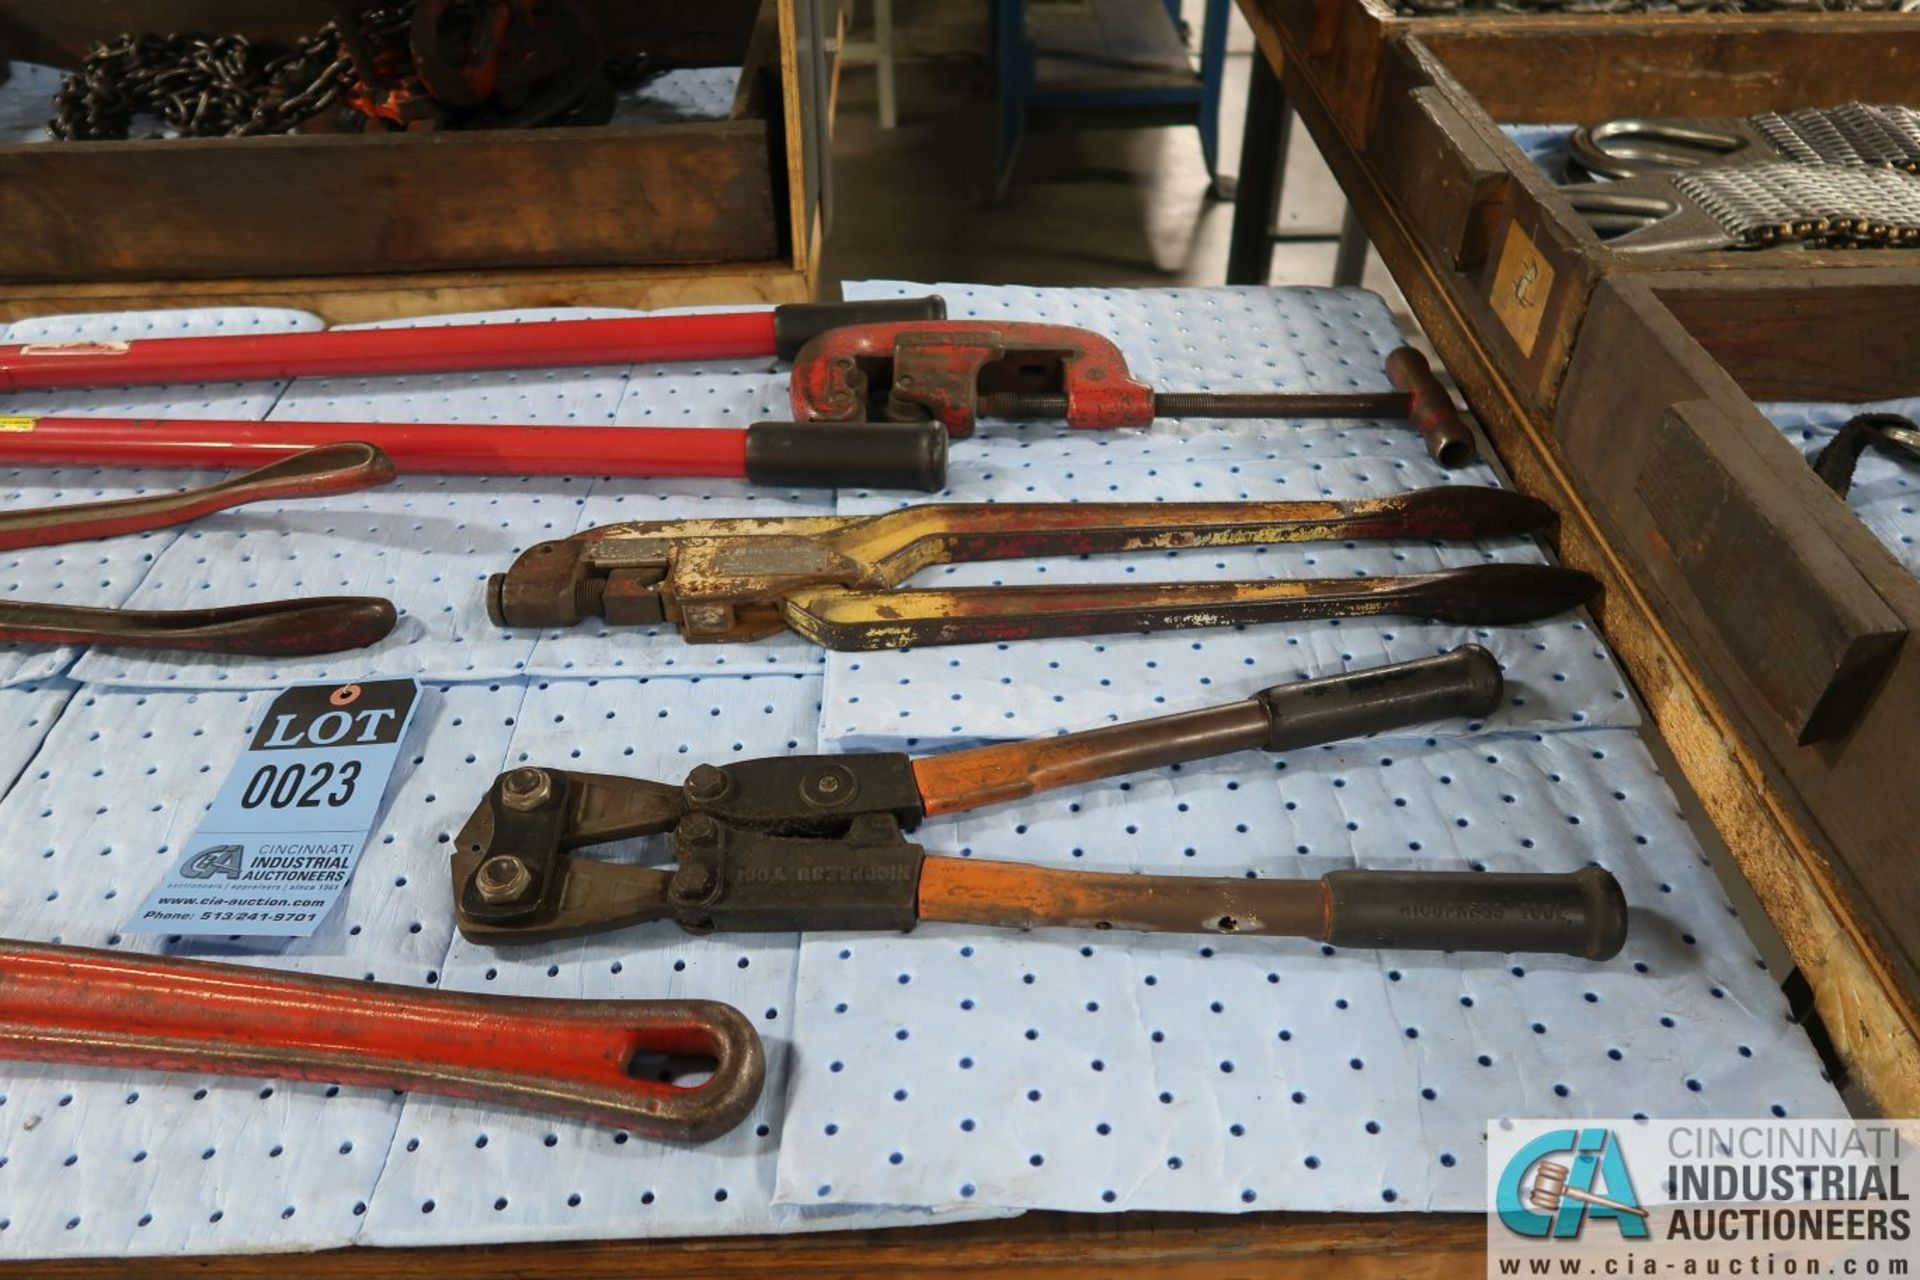 (LOT) PIPE WRENCH, BOLT CUTTERS, CRIMPERS, PIPE CUTTERS AND PALLET PULLERS - Image 3 of 4